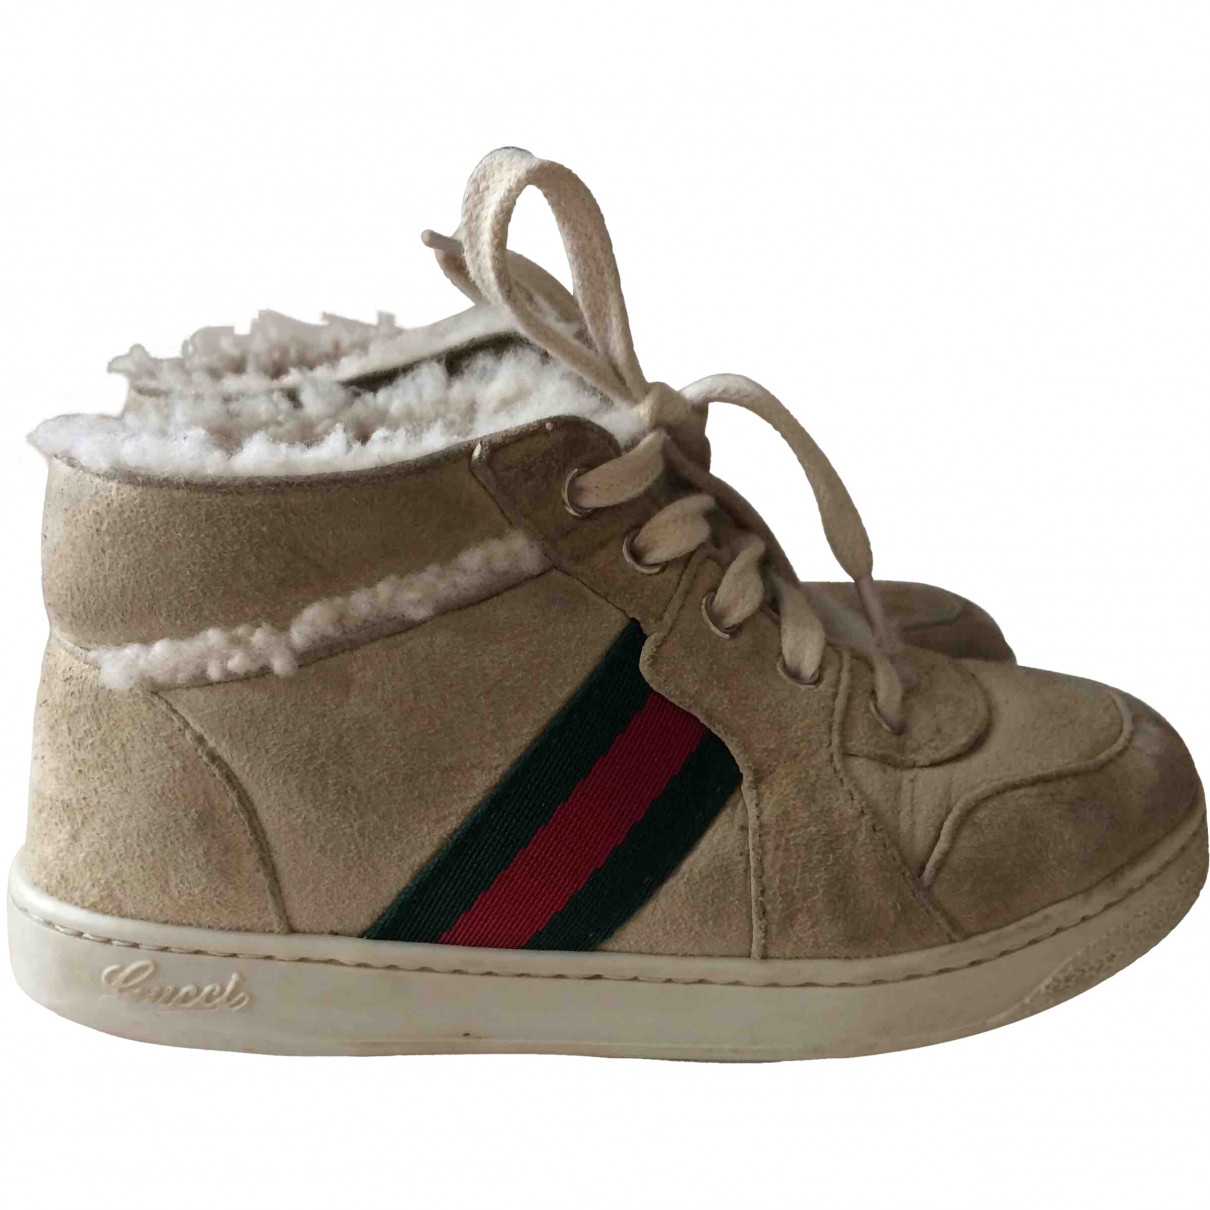 Gucci \N Beige Suede Boots for Kids 25 EU